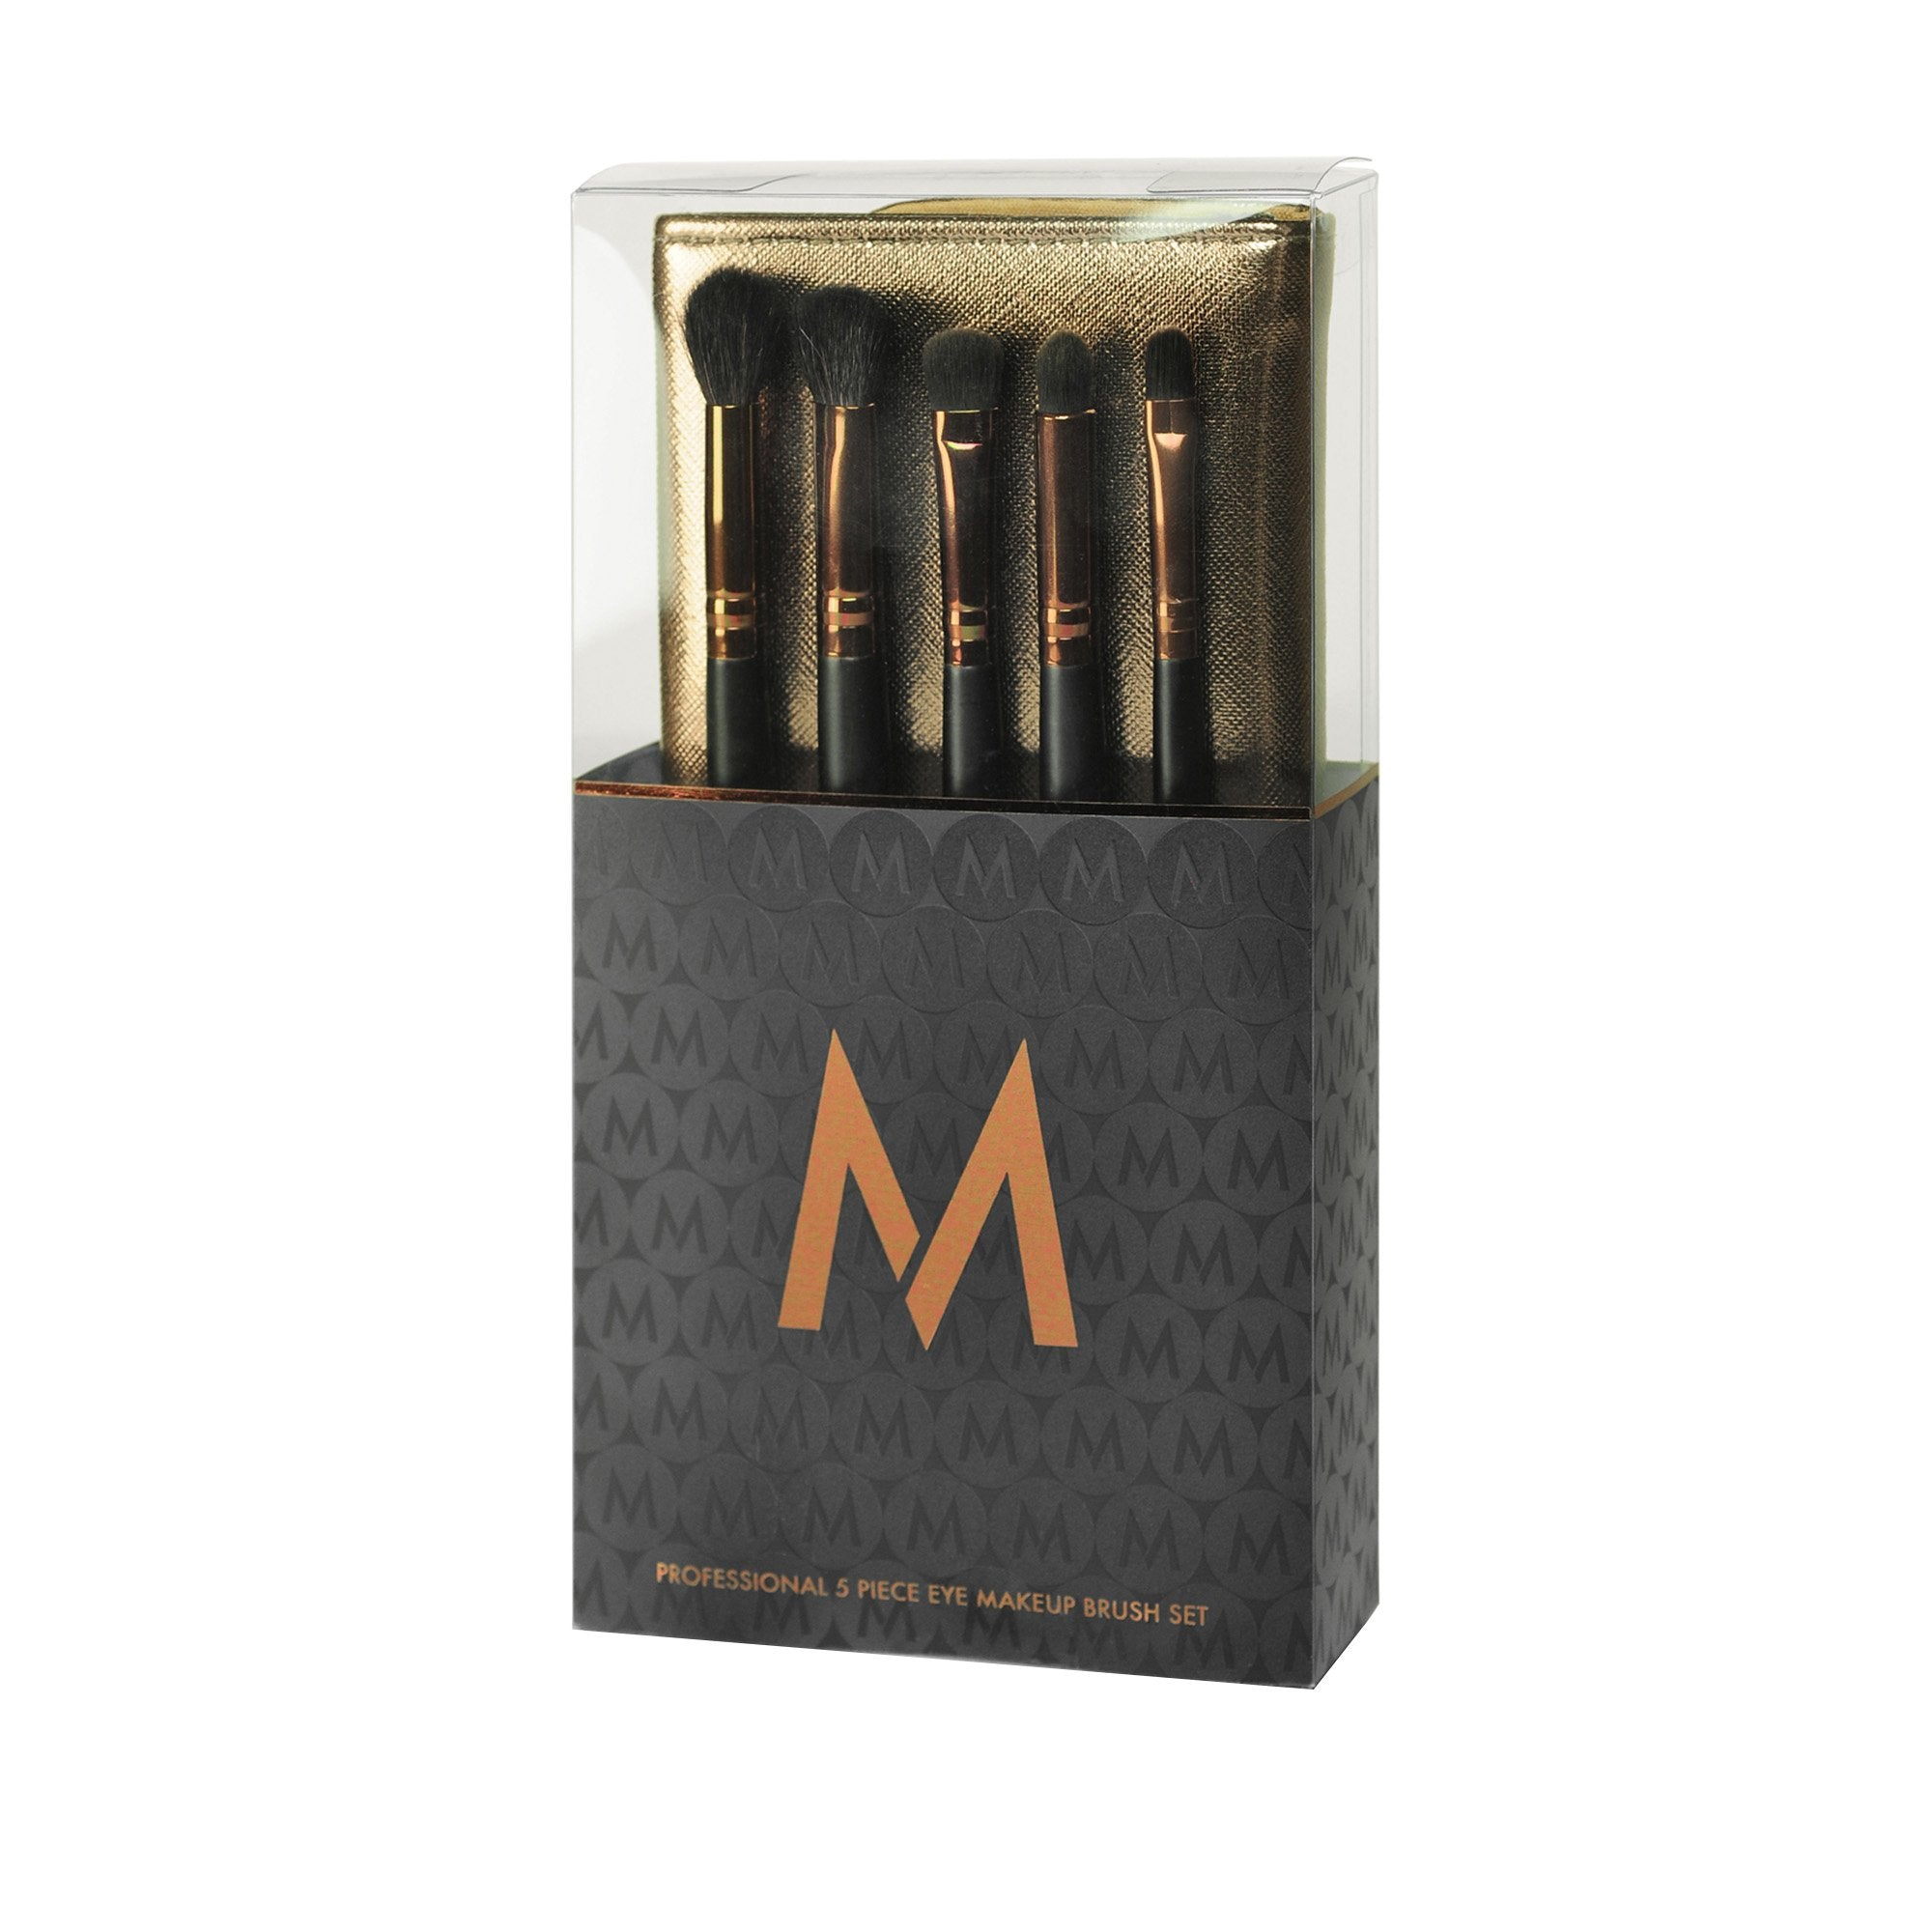 5 Piece Make Up Brush Set